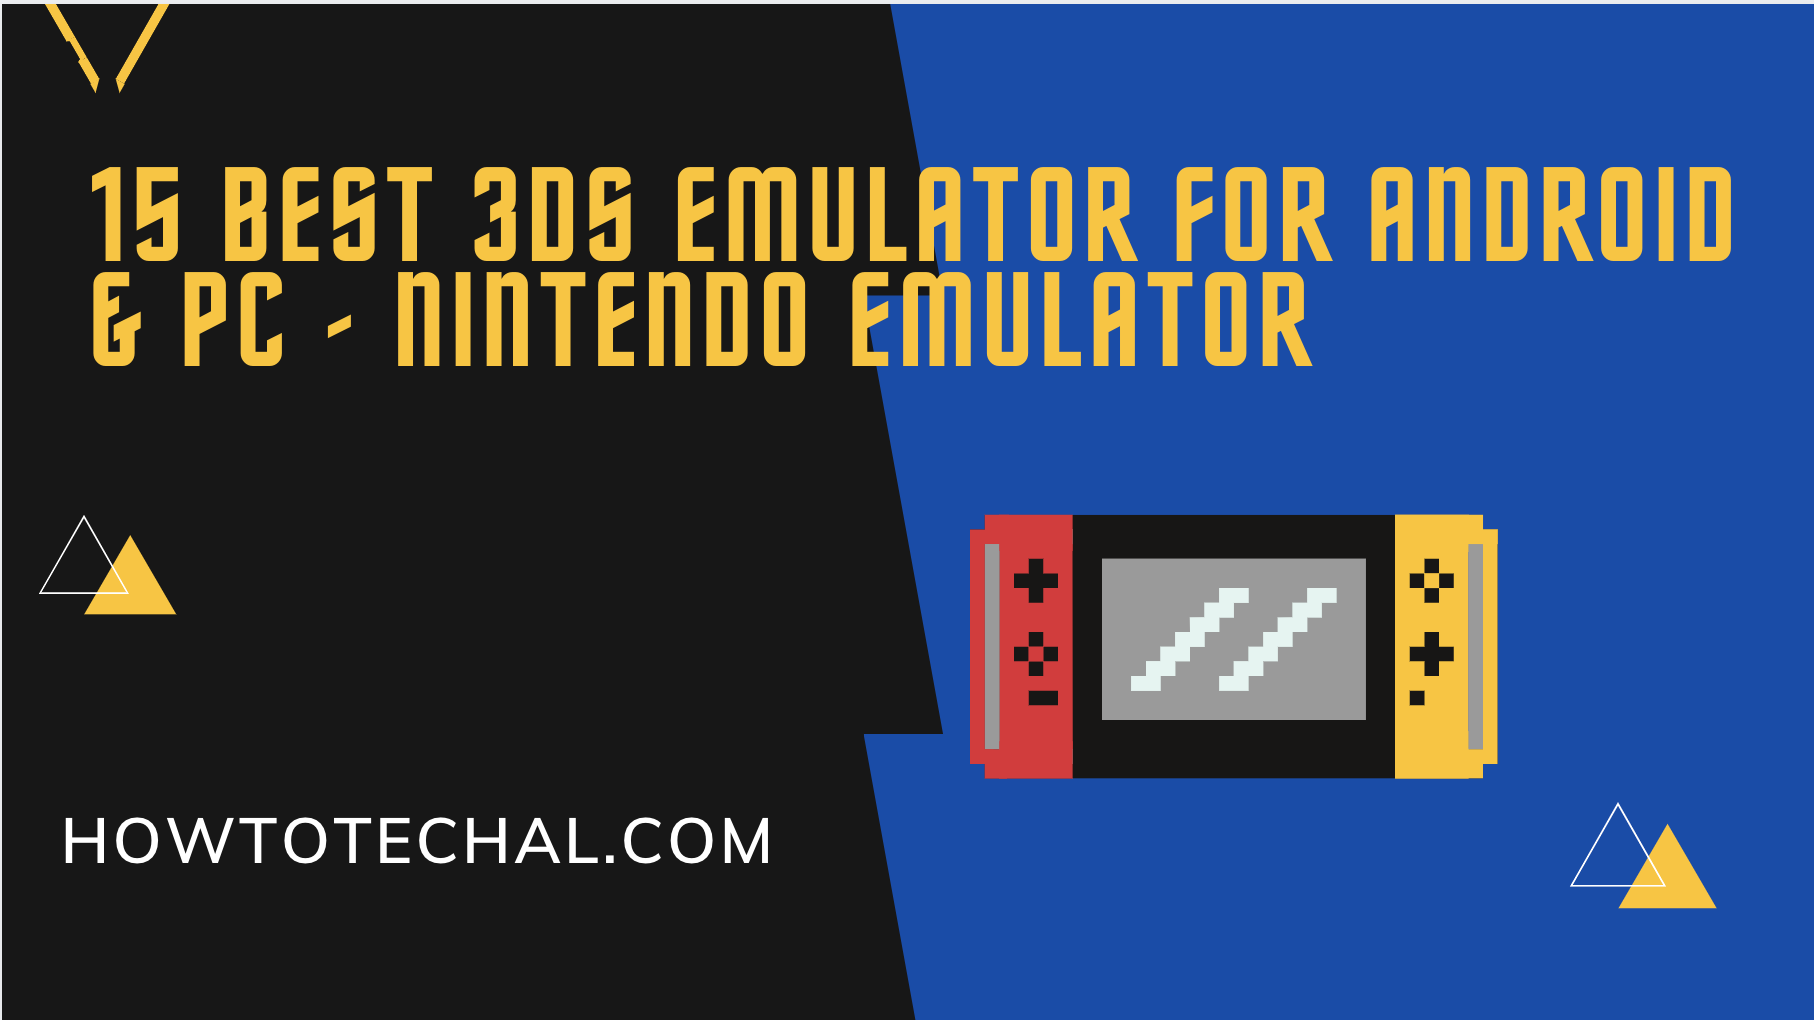 15 Best 3DS Emulator for Android & PC – Nintendo Emulator